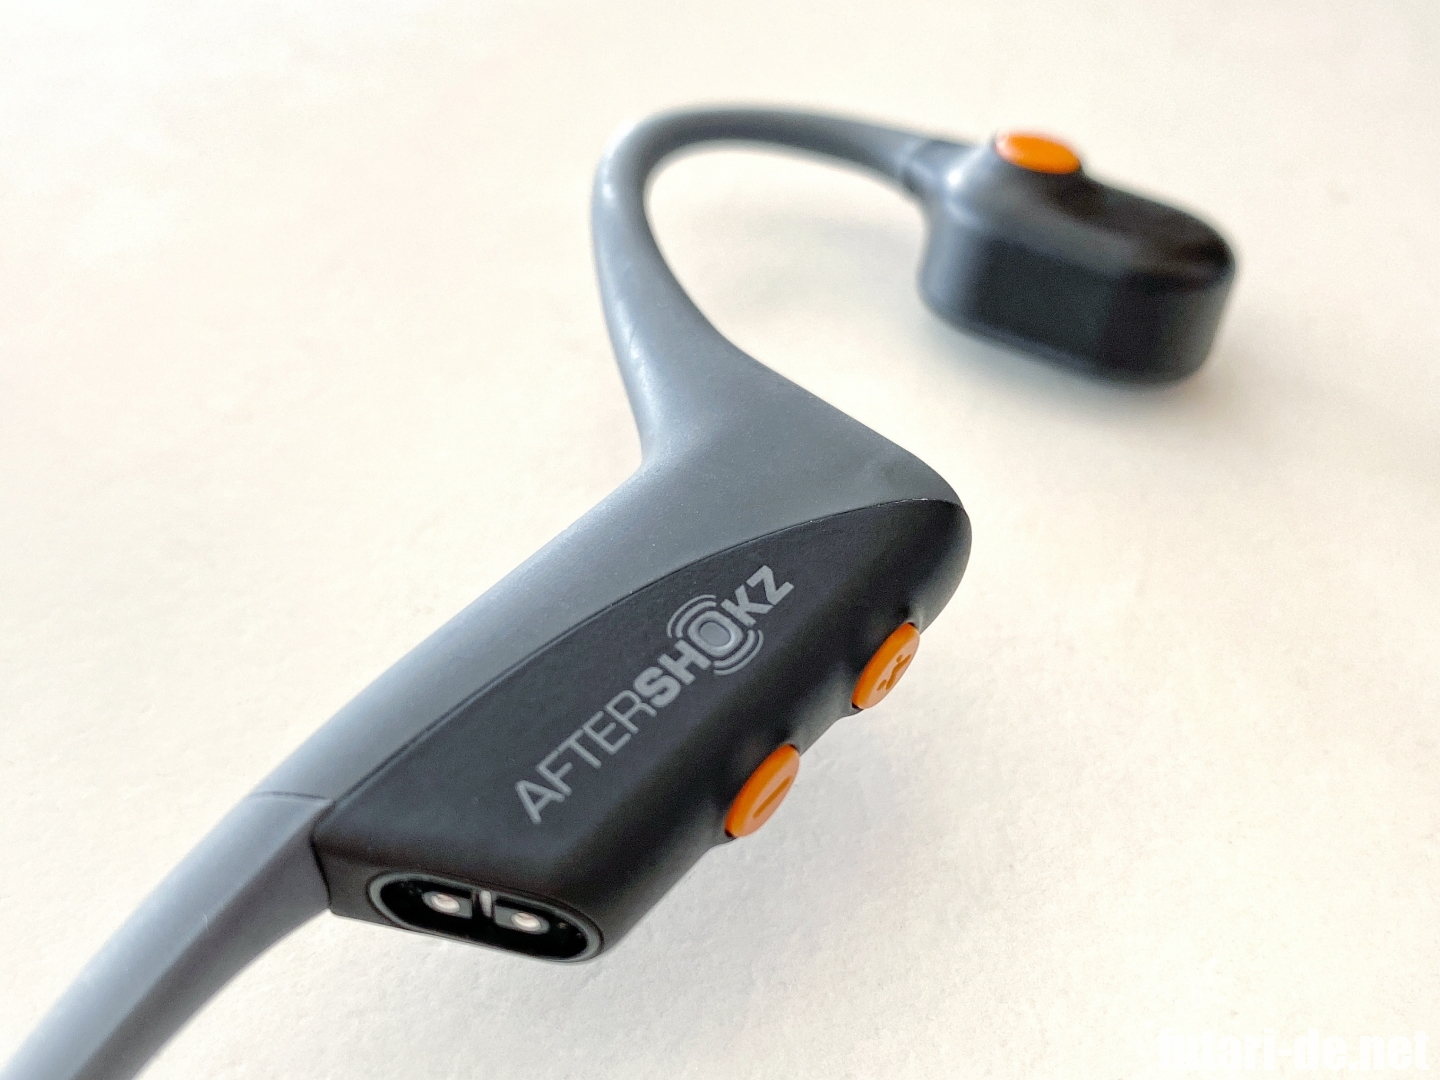 AfterShokz OpenComm right side